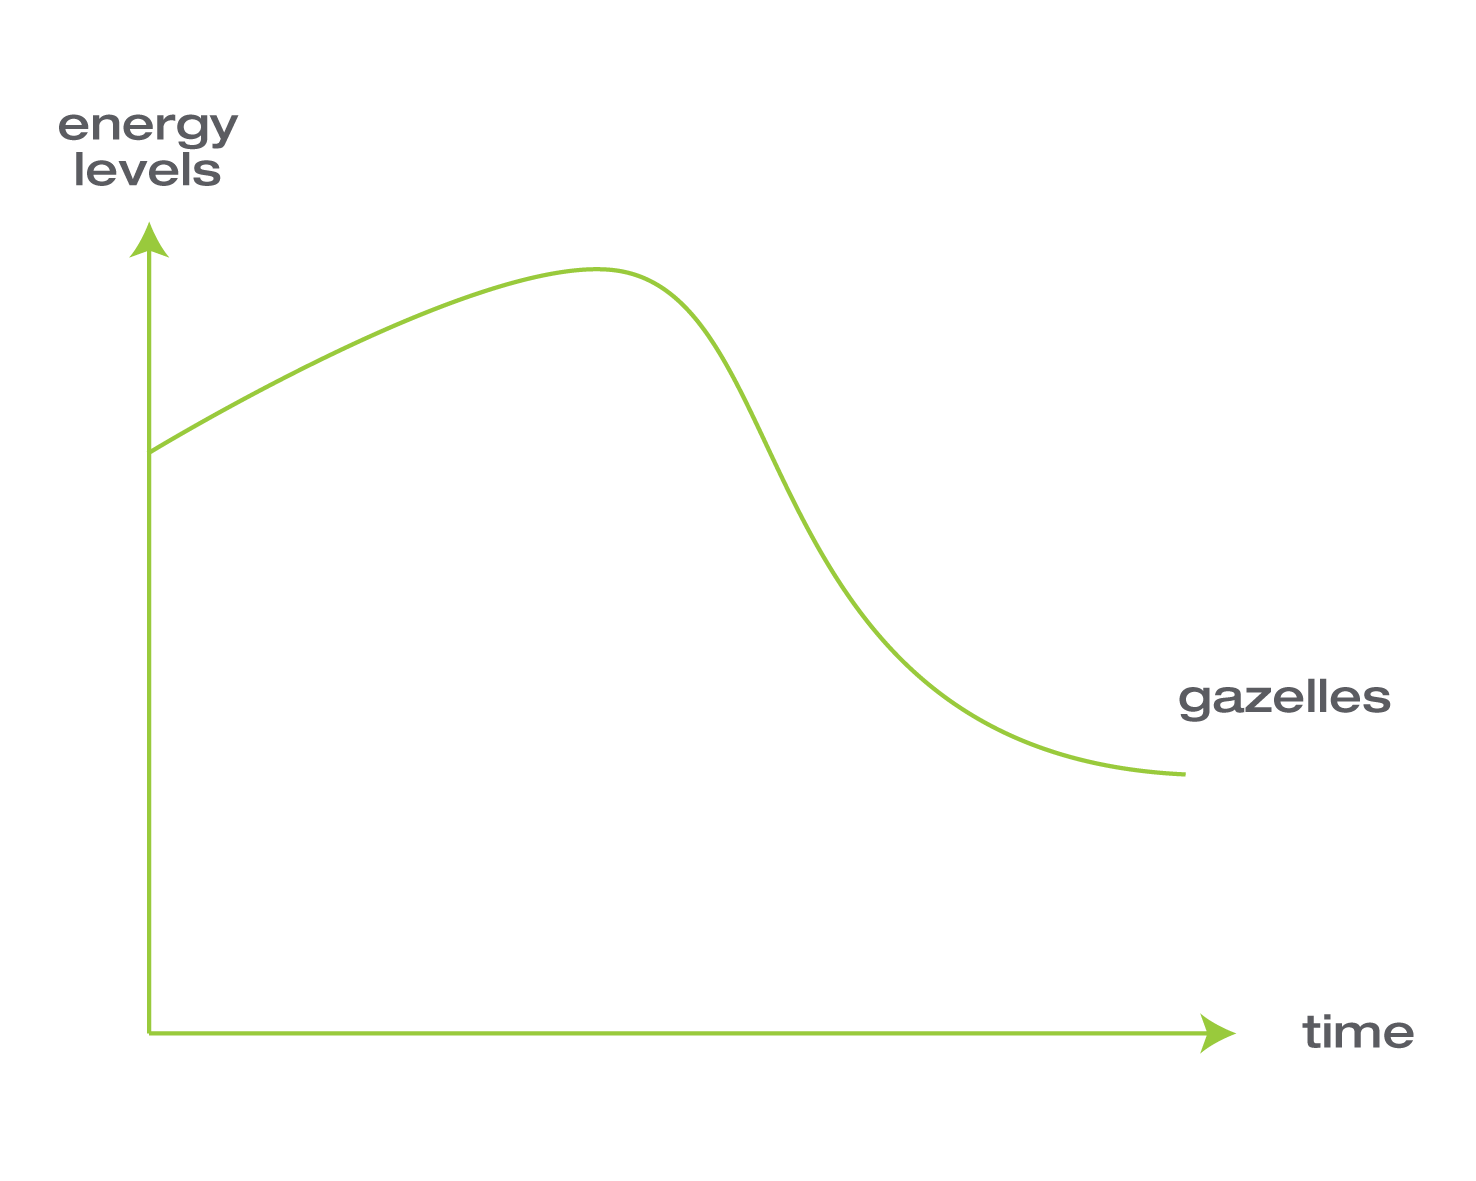 energy levels gazelles